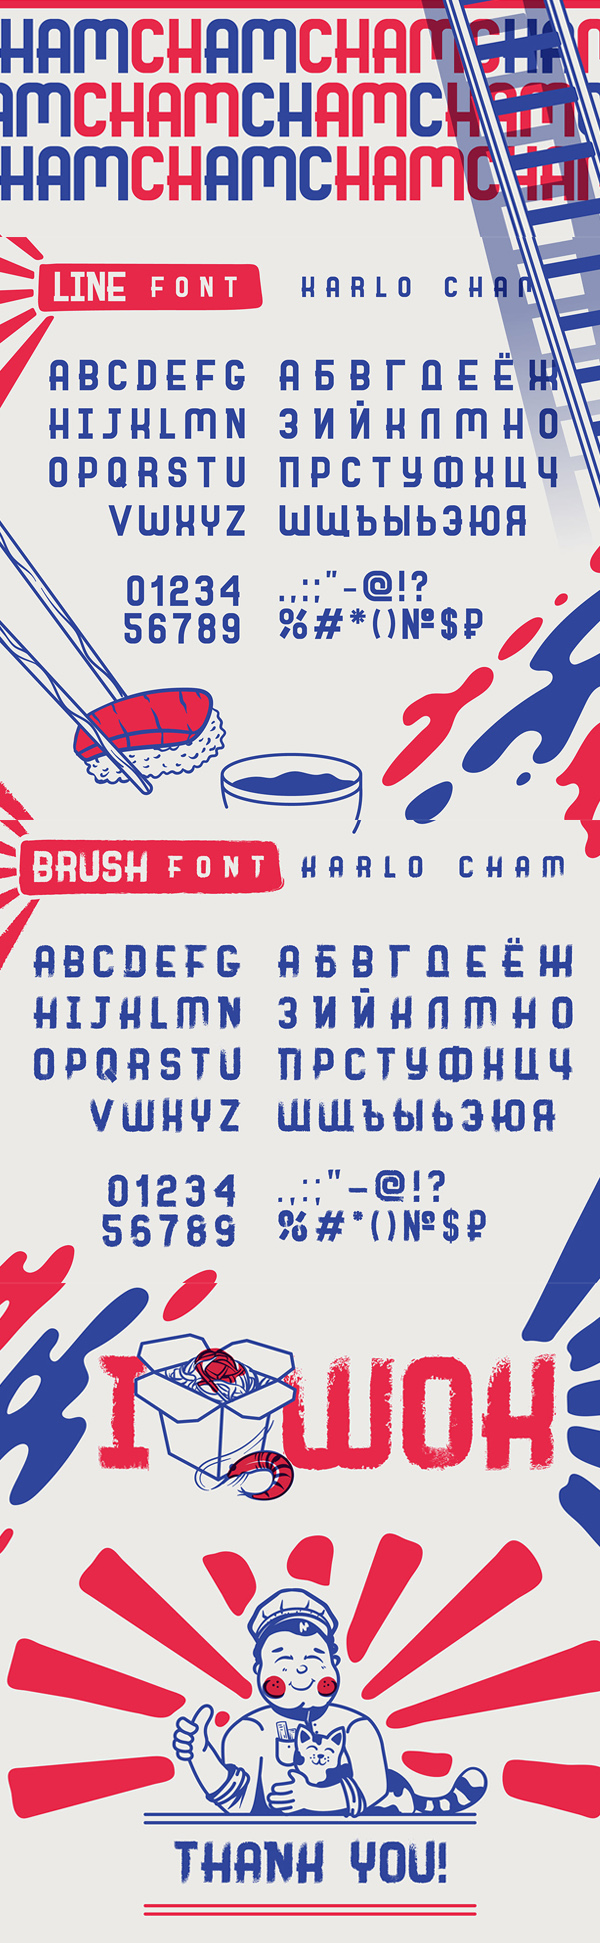 Karlo Cham Font Letters